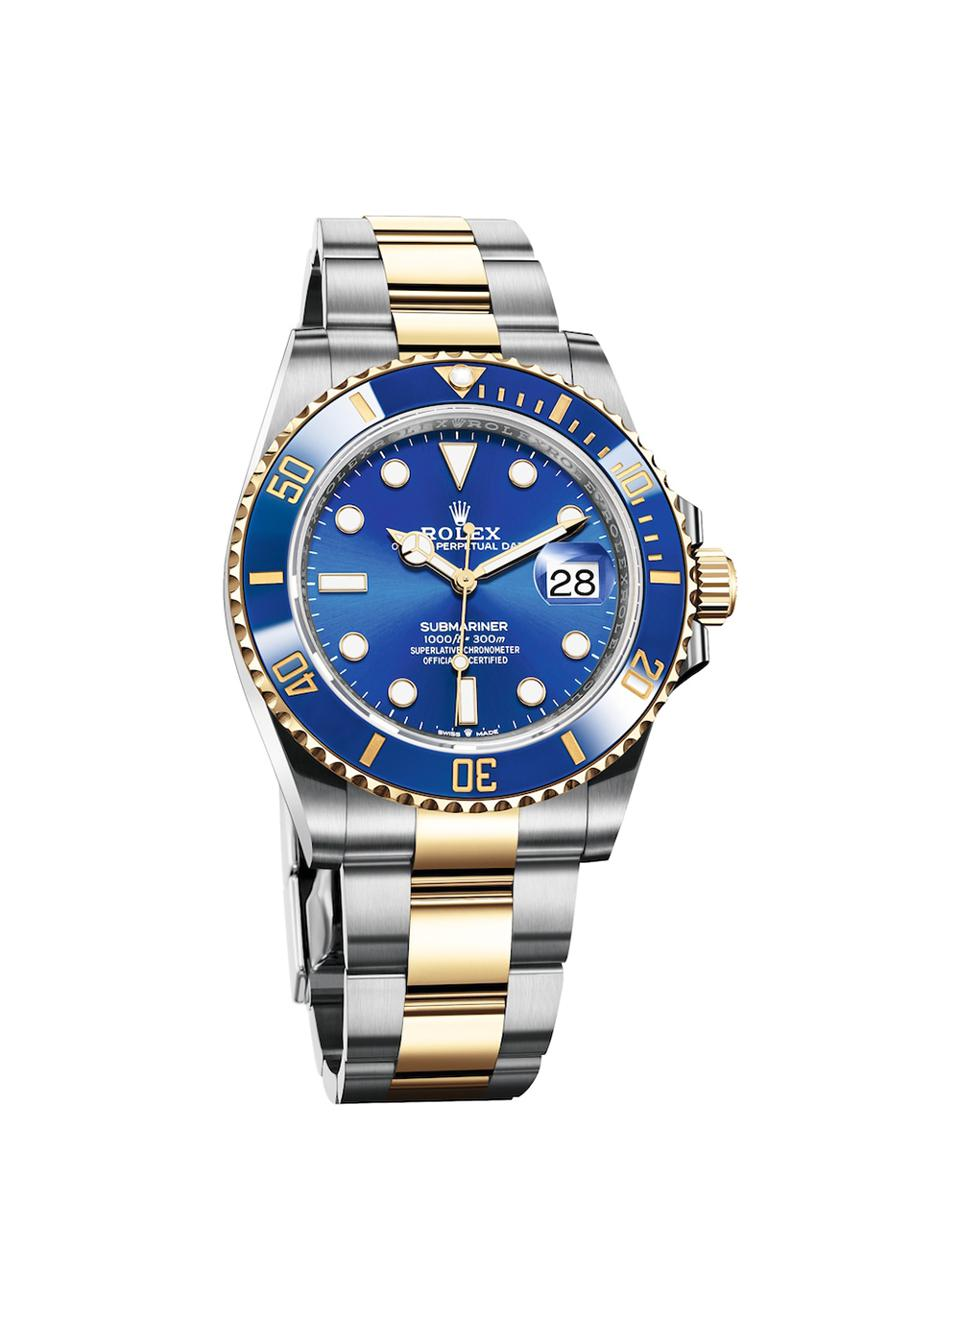 The new Rolex Submariner Date Ref. 126610.